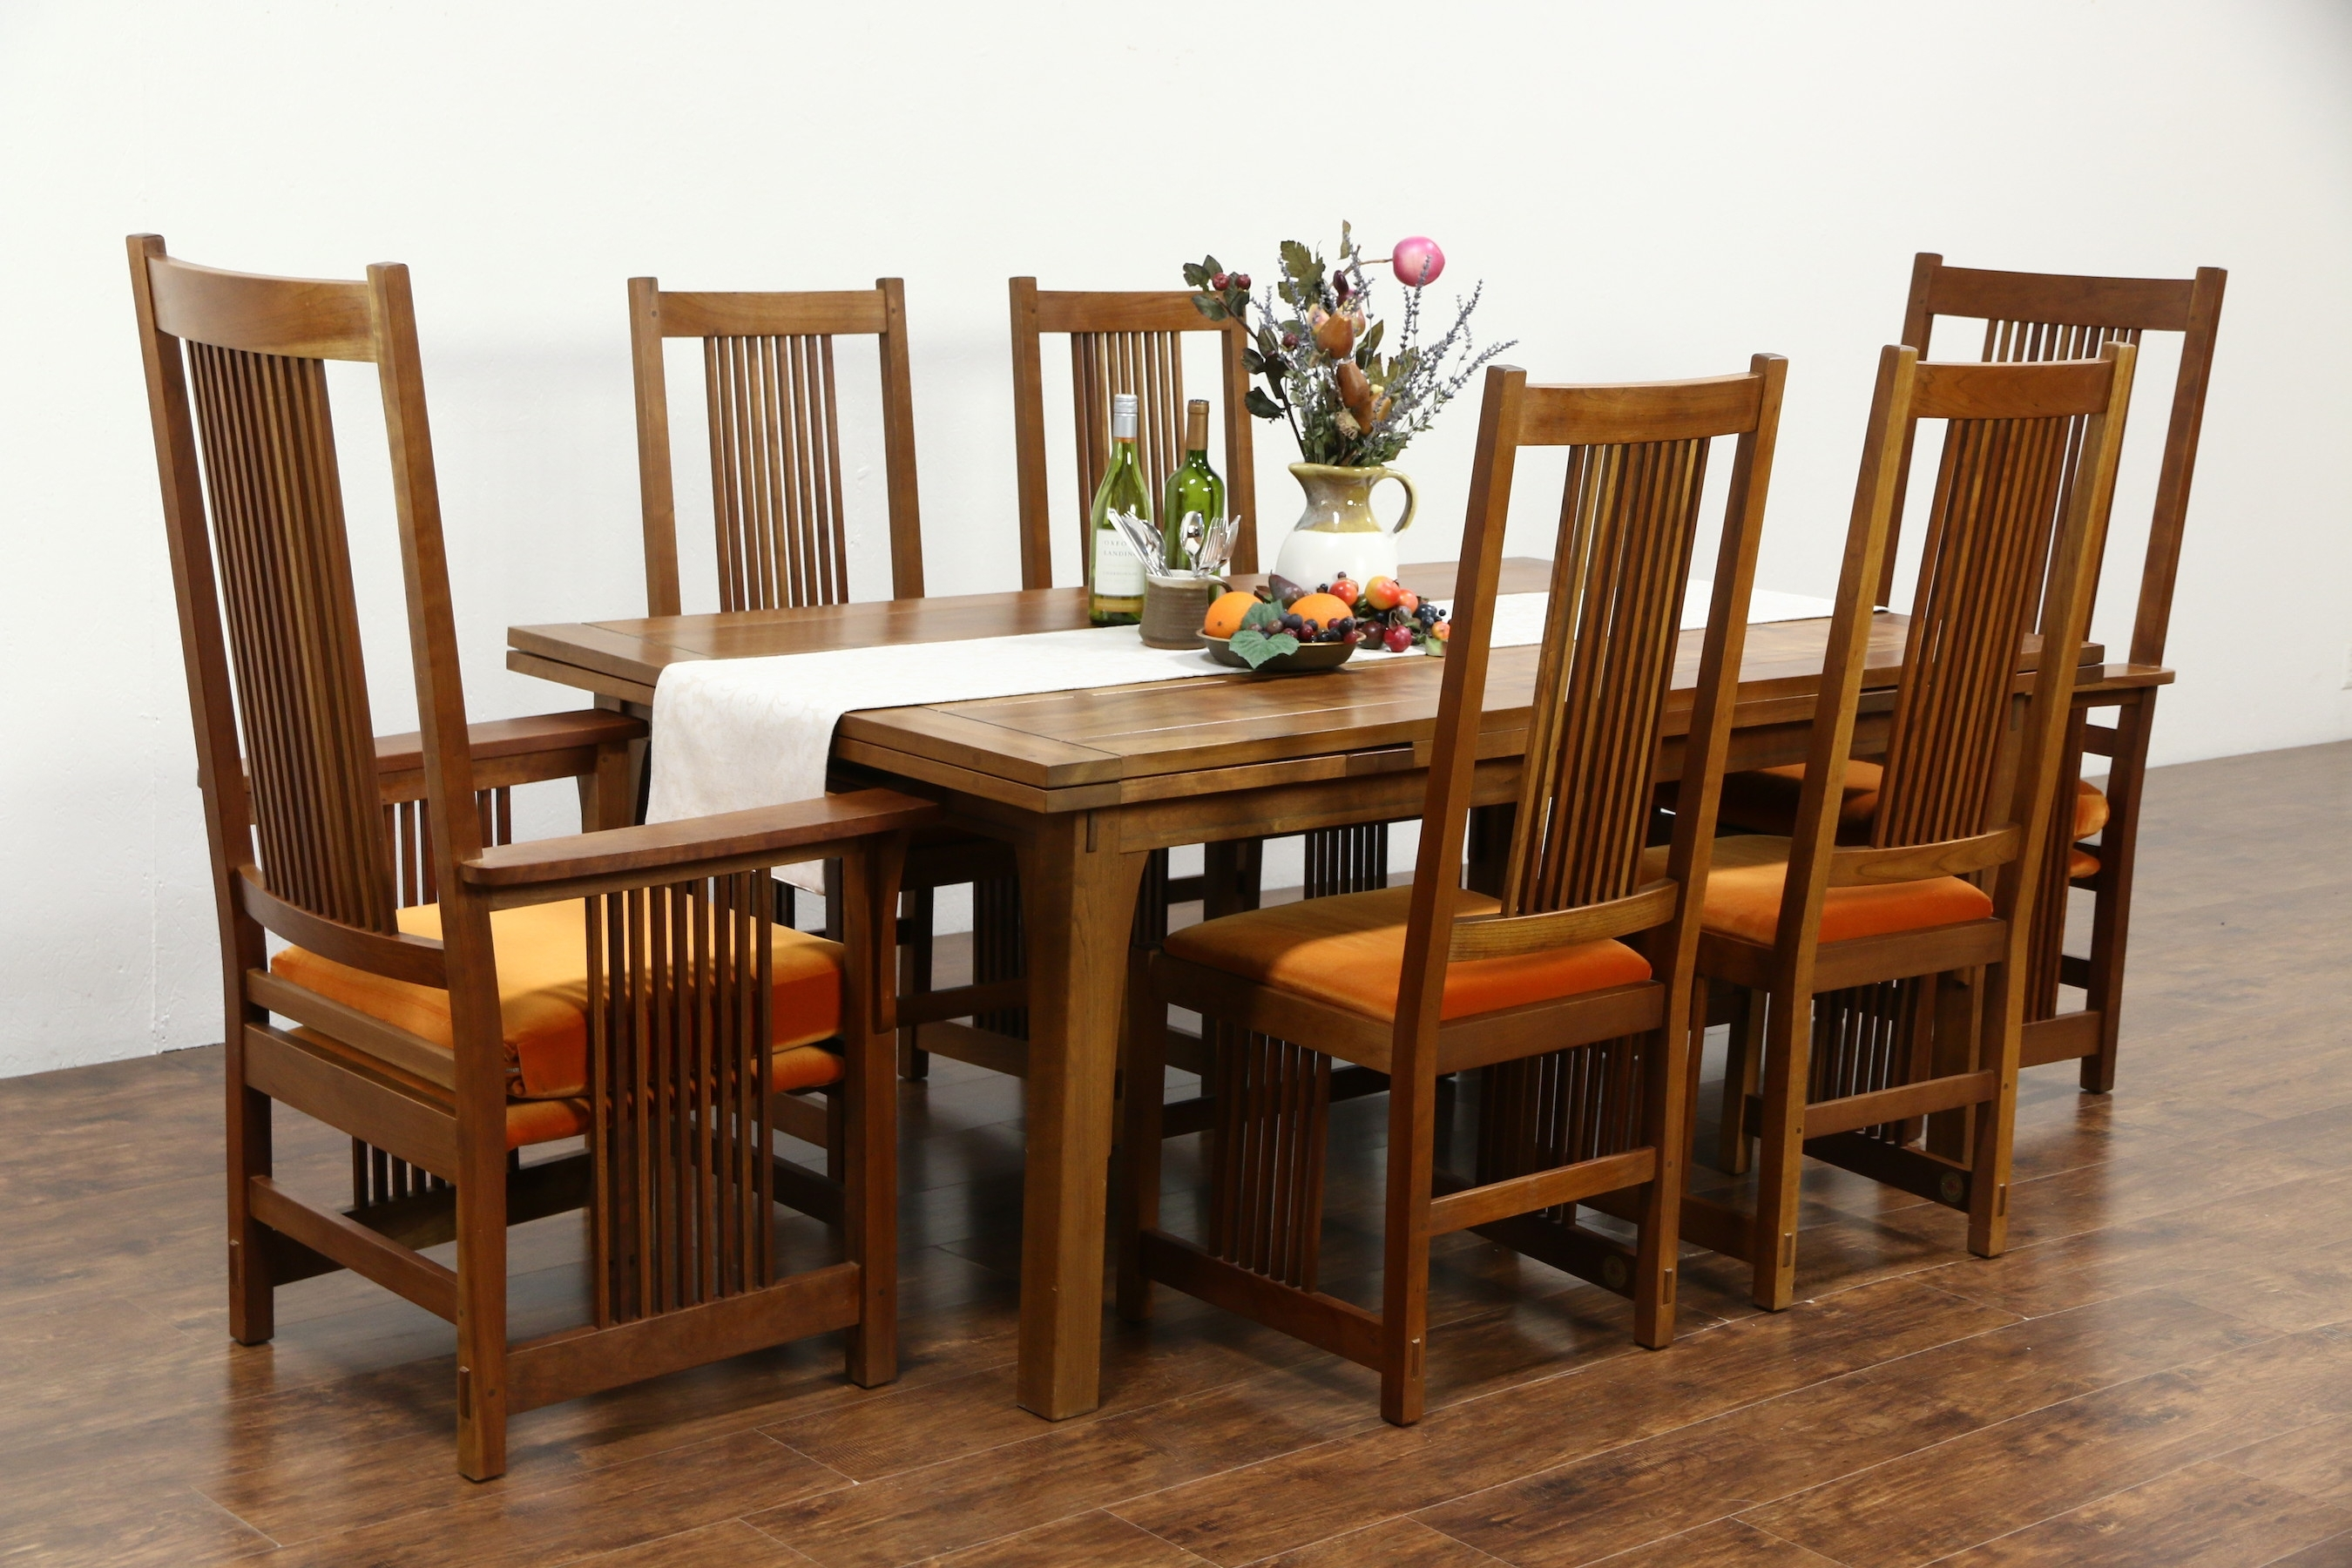 Sold – Stickley Signed Cherry Craftsman Design 1995 Dining Set Throughout Latest Craftsman Upholstered Side Chairs (#16 of 20)